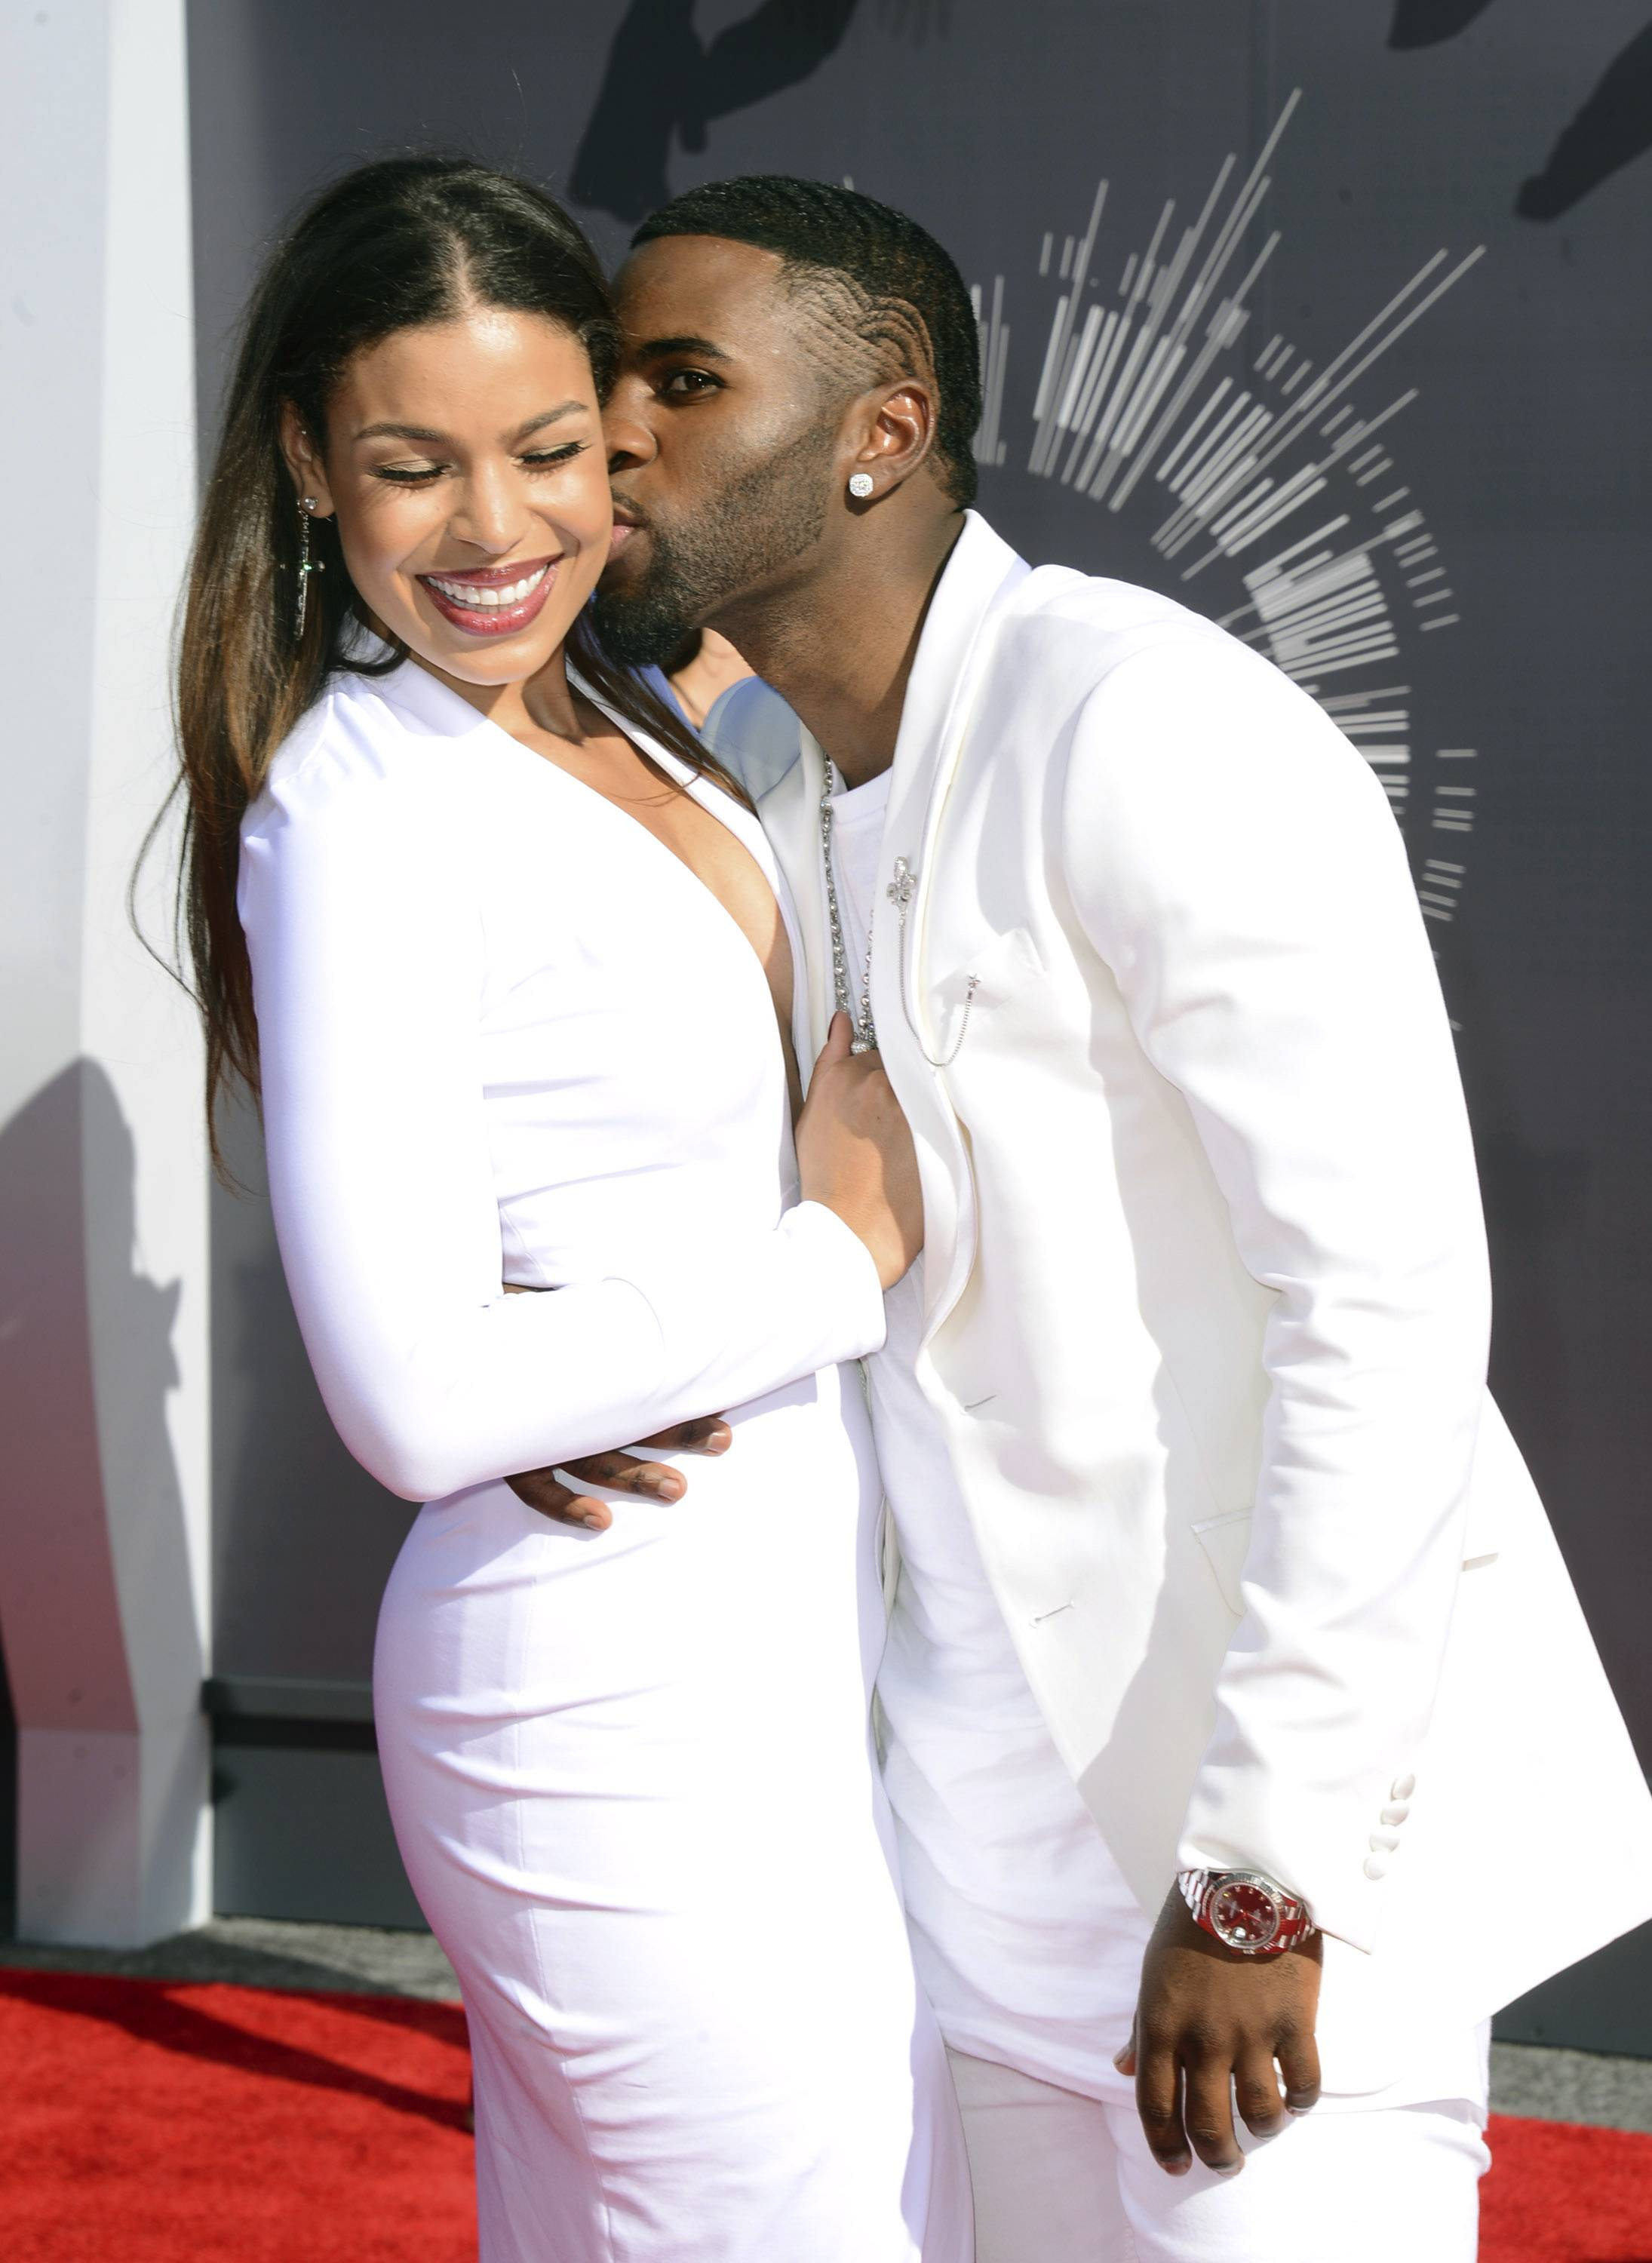 Jordin Sparks, left, and Jason Derulo offer up some sweet PDA on the red carpet at the VMAs.